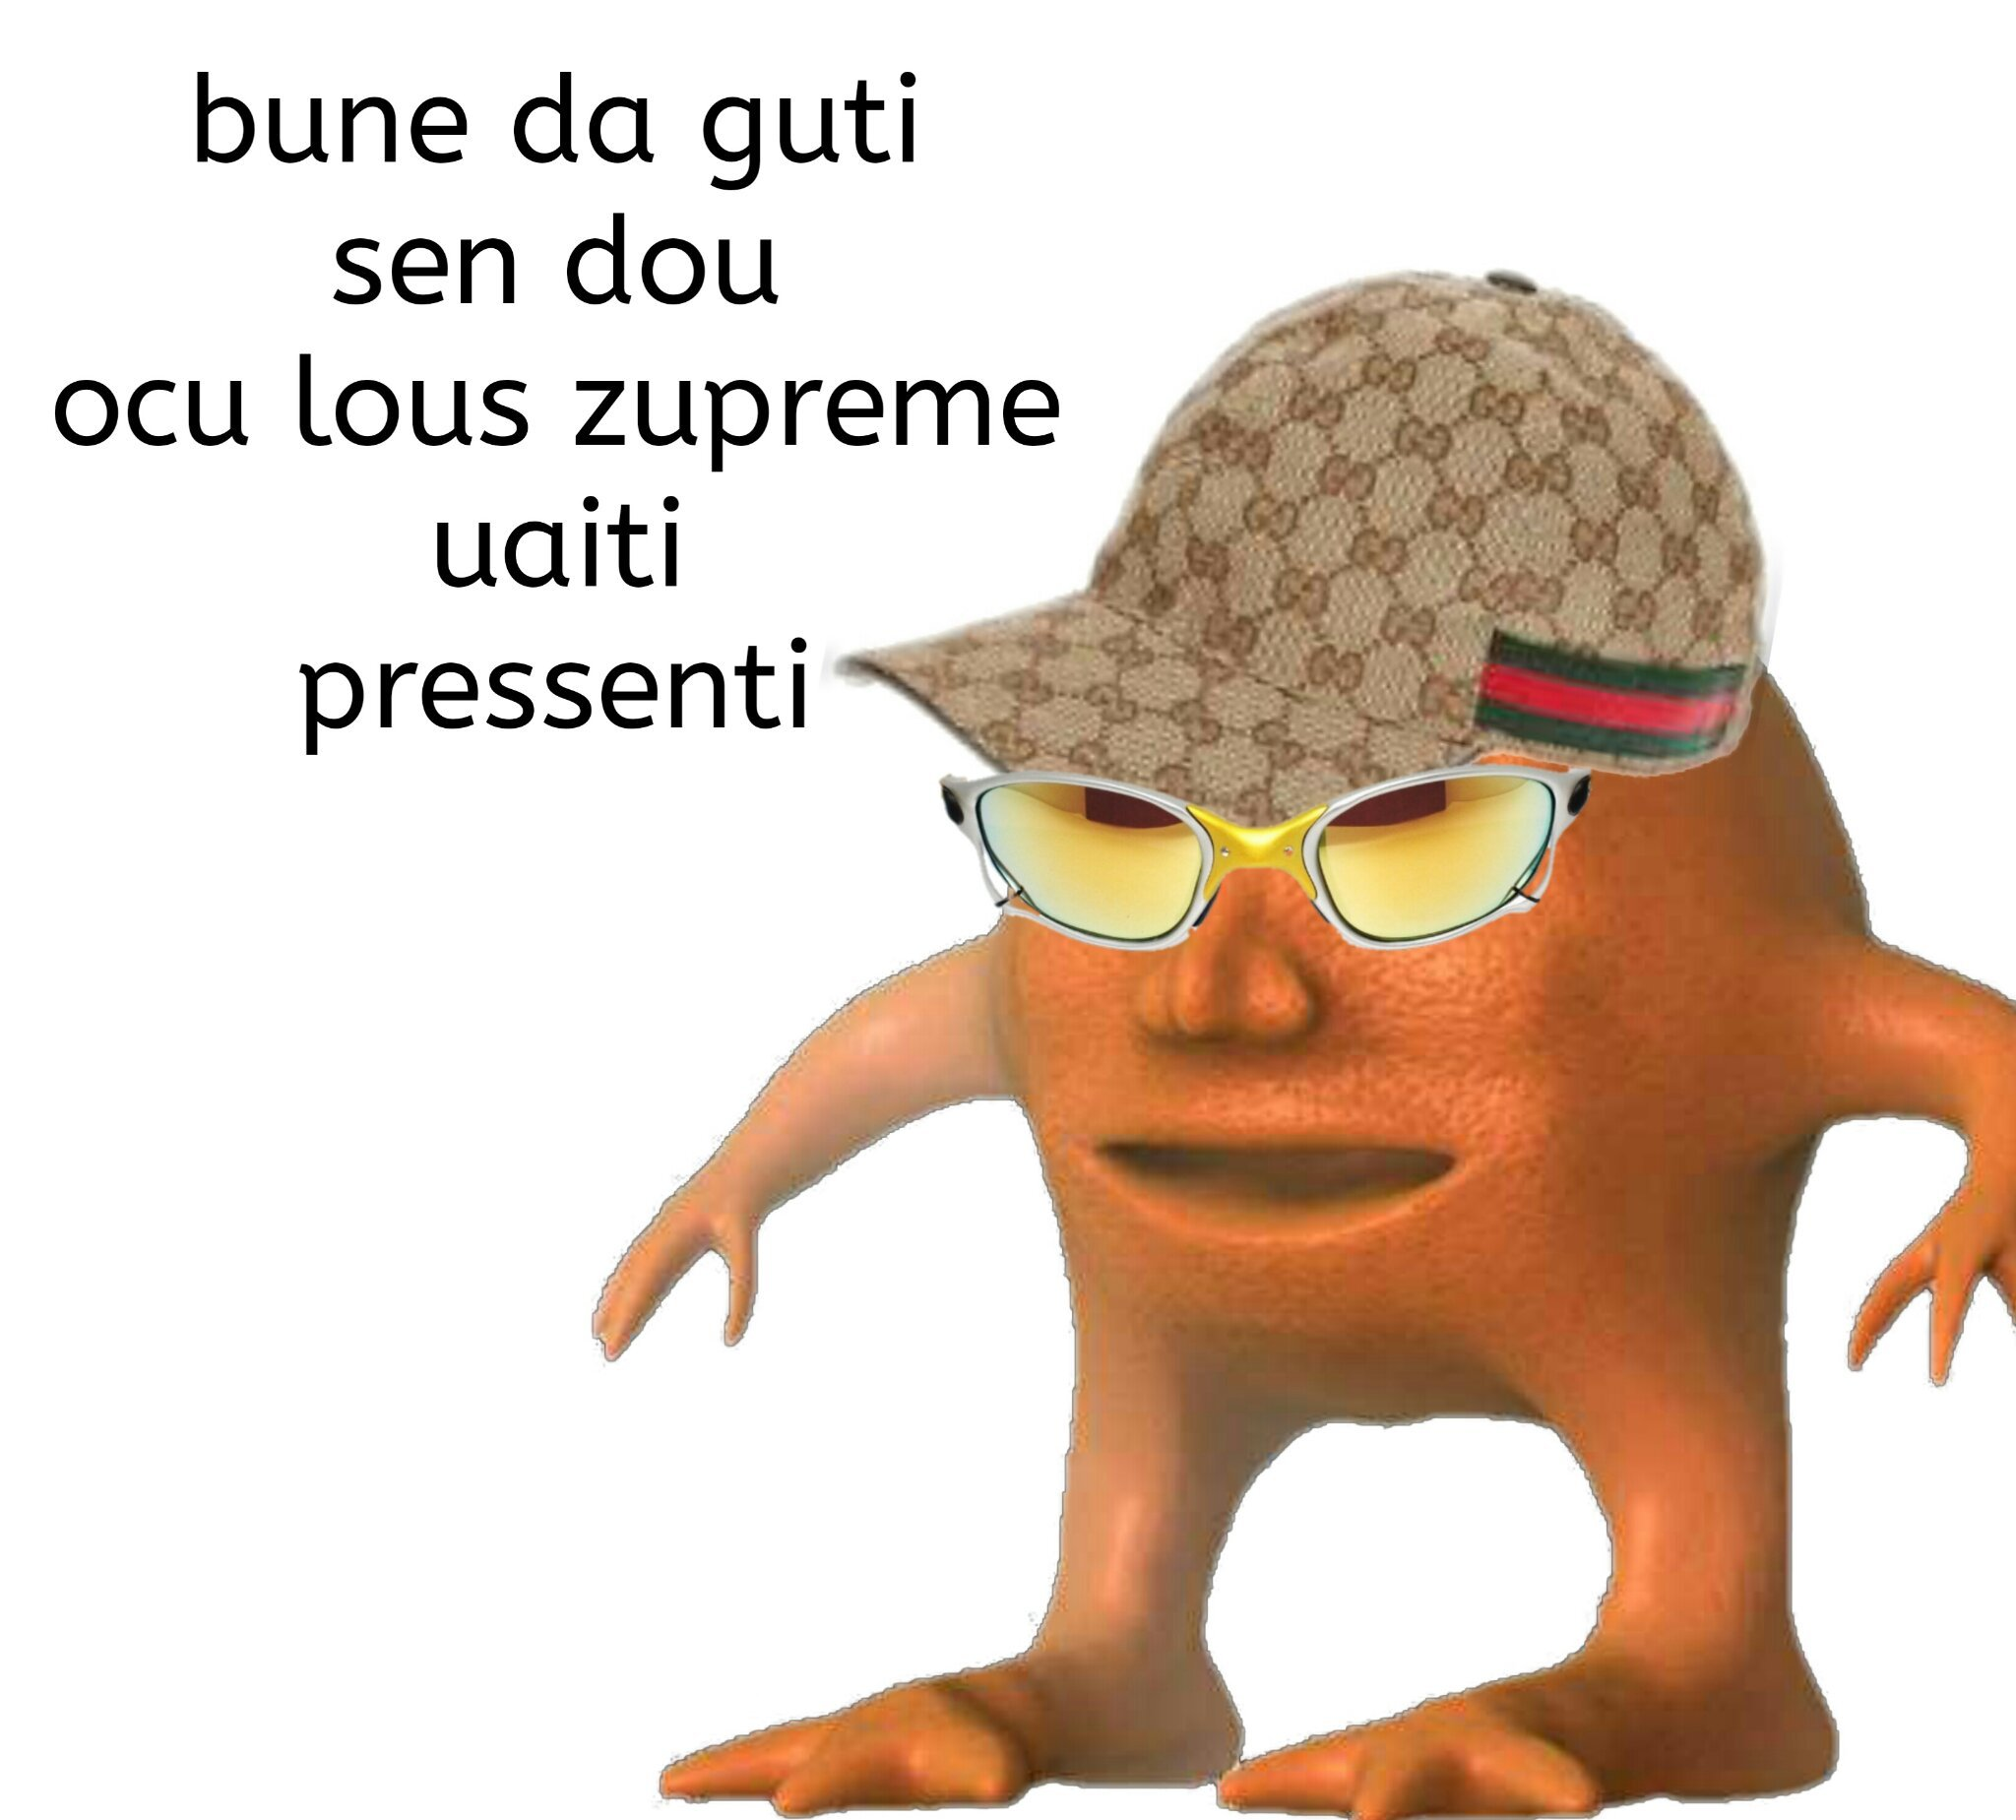 Laranjo do outifite - meme